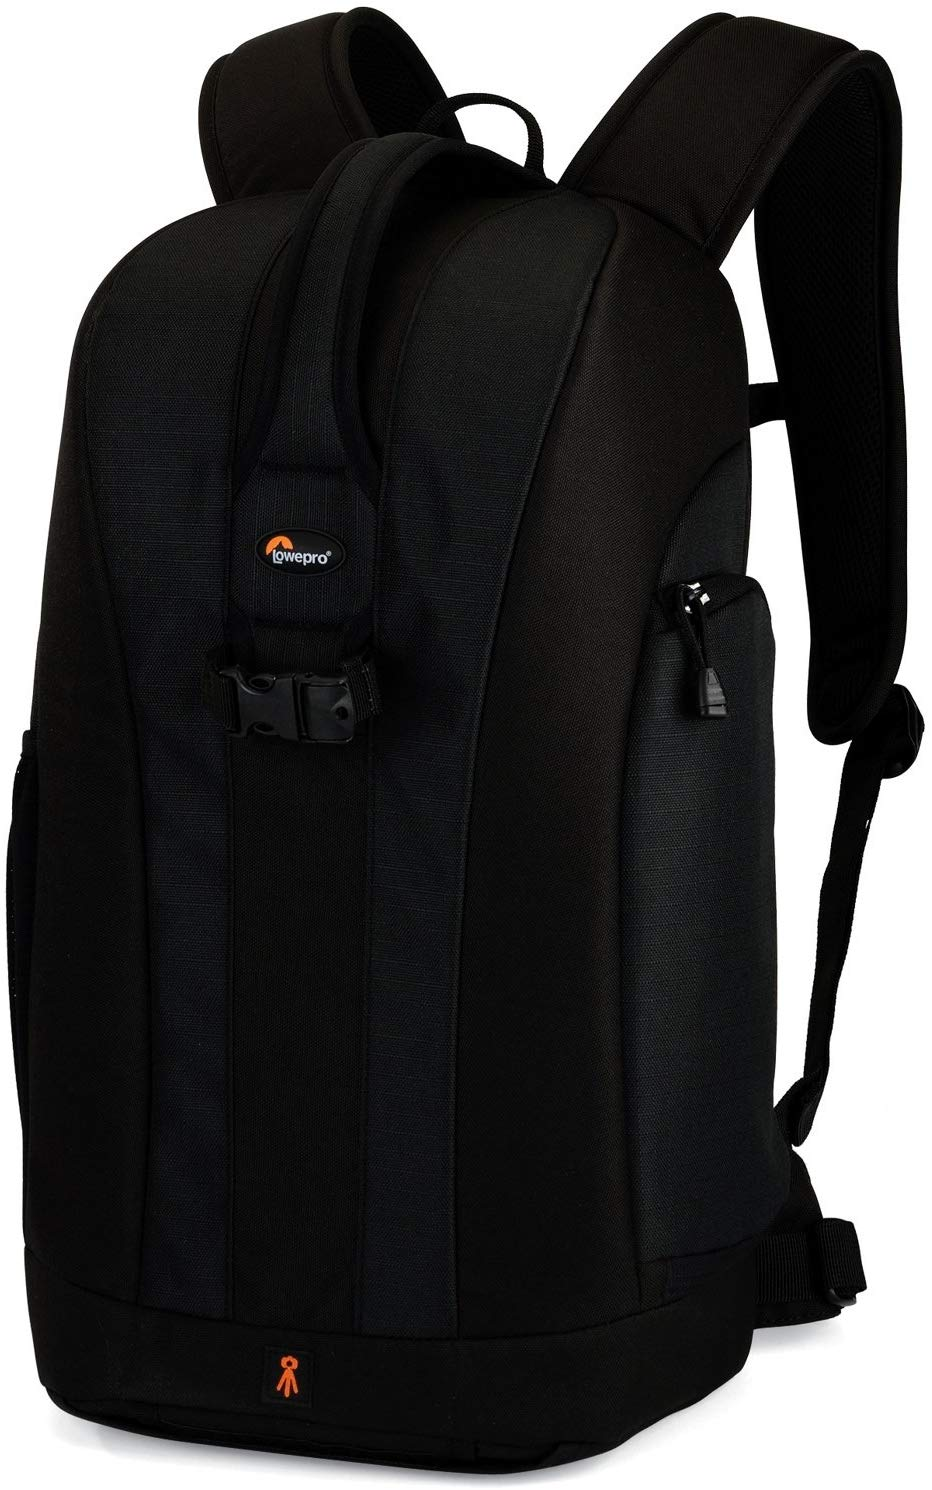 Lowepro Kamerarucksack amazon